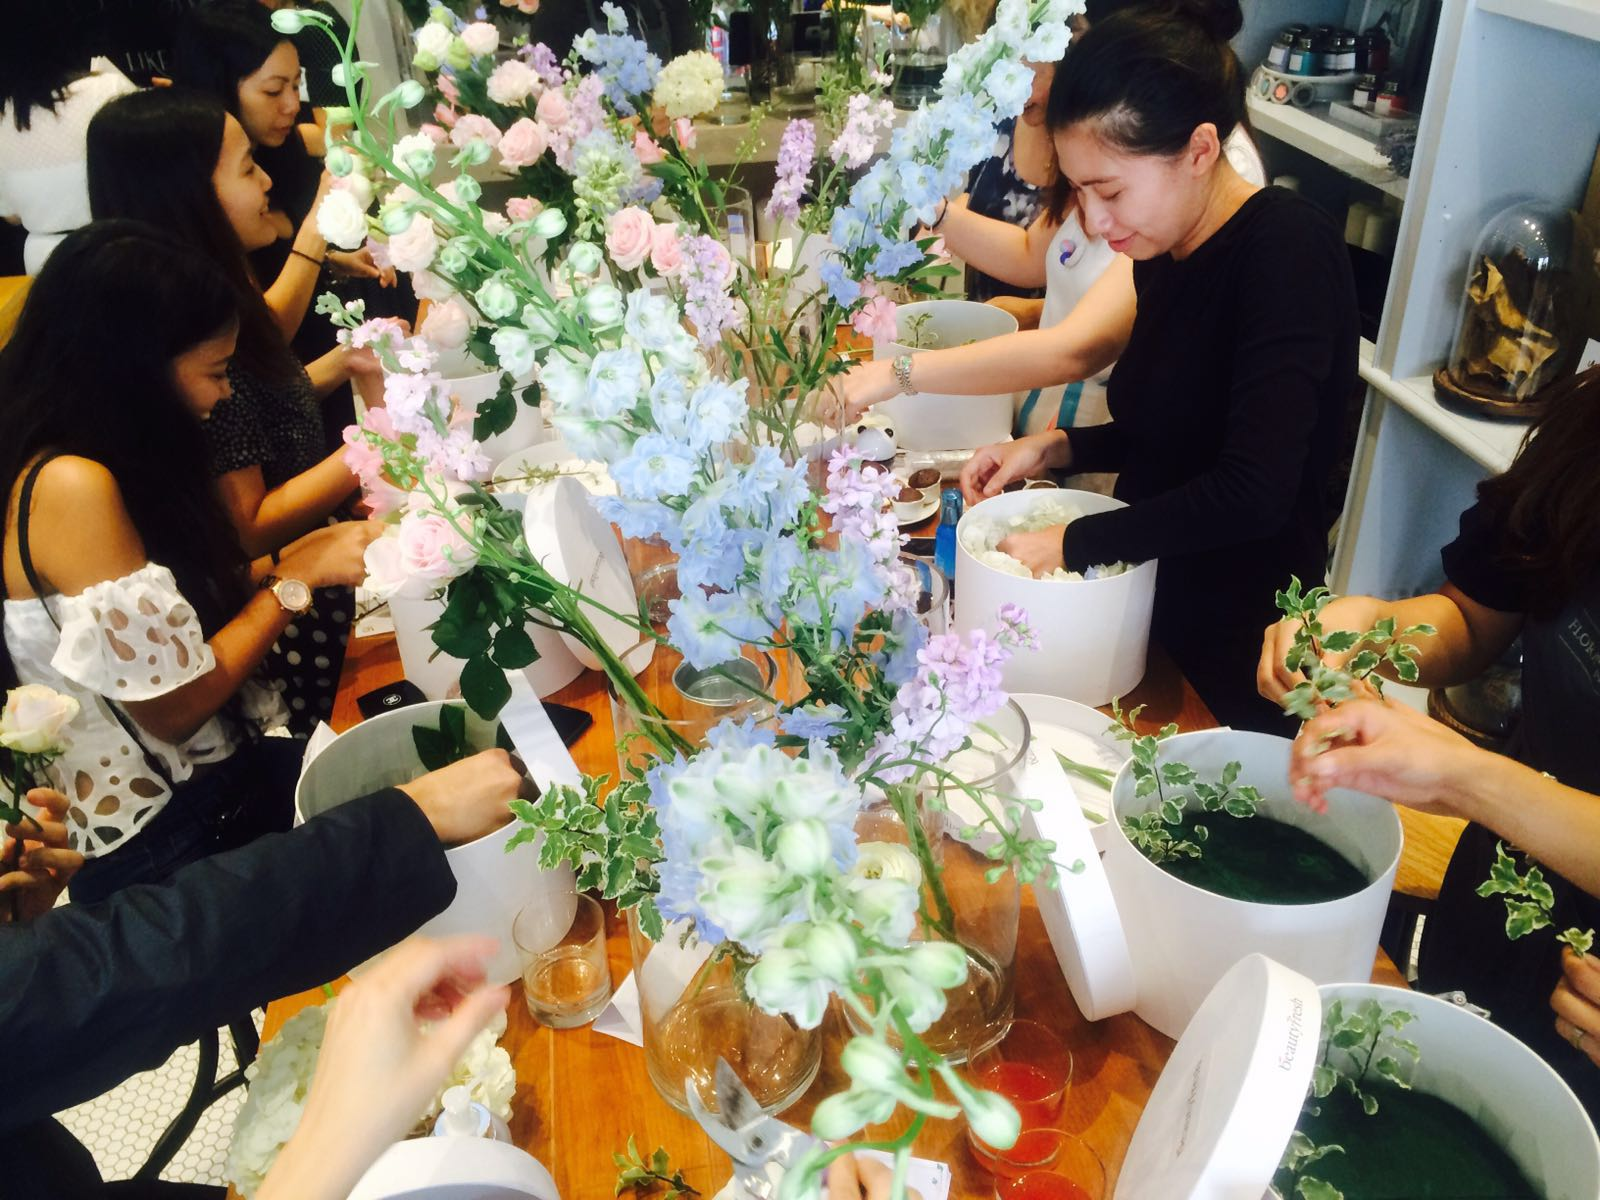 Our florists-to-be in action!